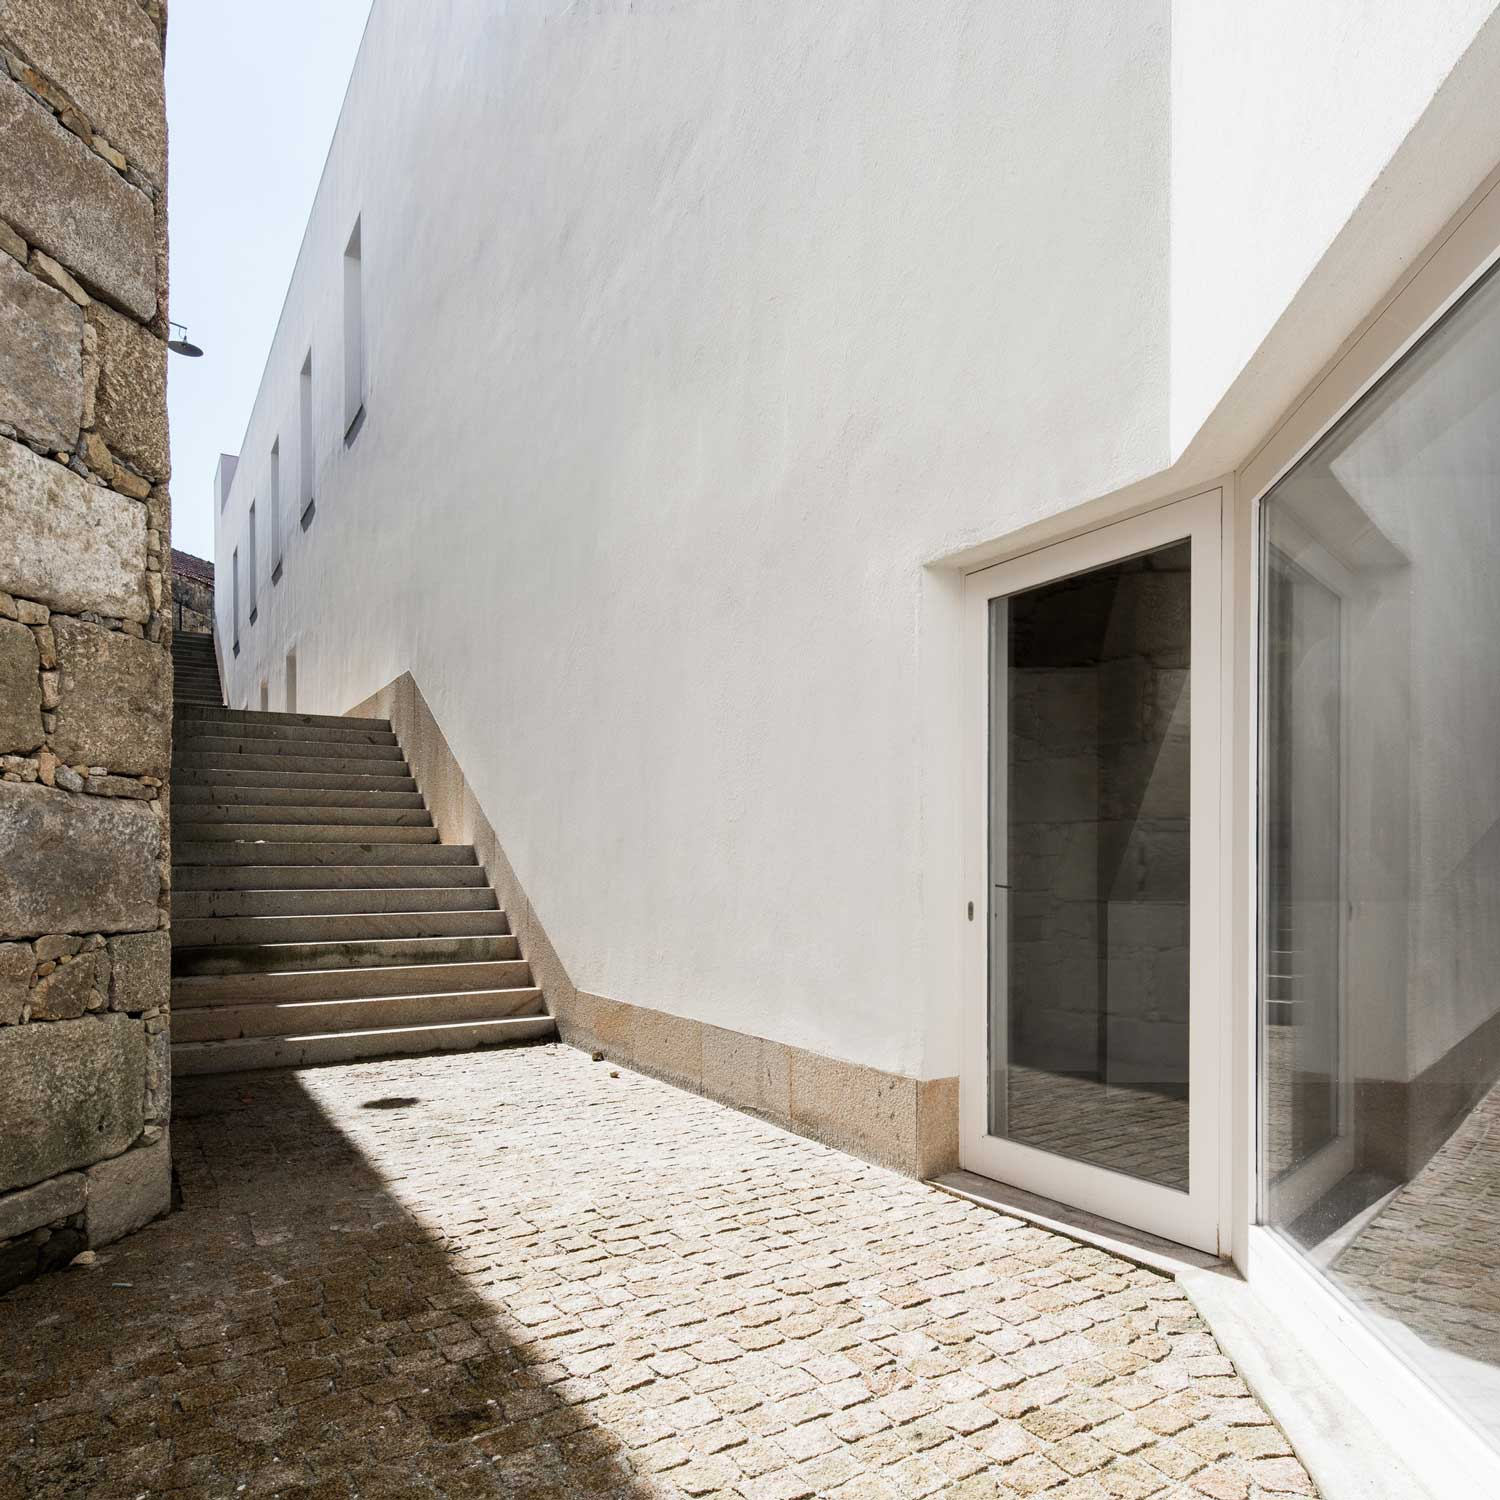 nuec mmap museums in portugal by alvaro siza eduardo souto de moura yellowtrace